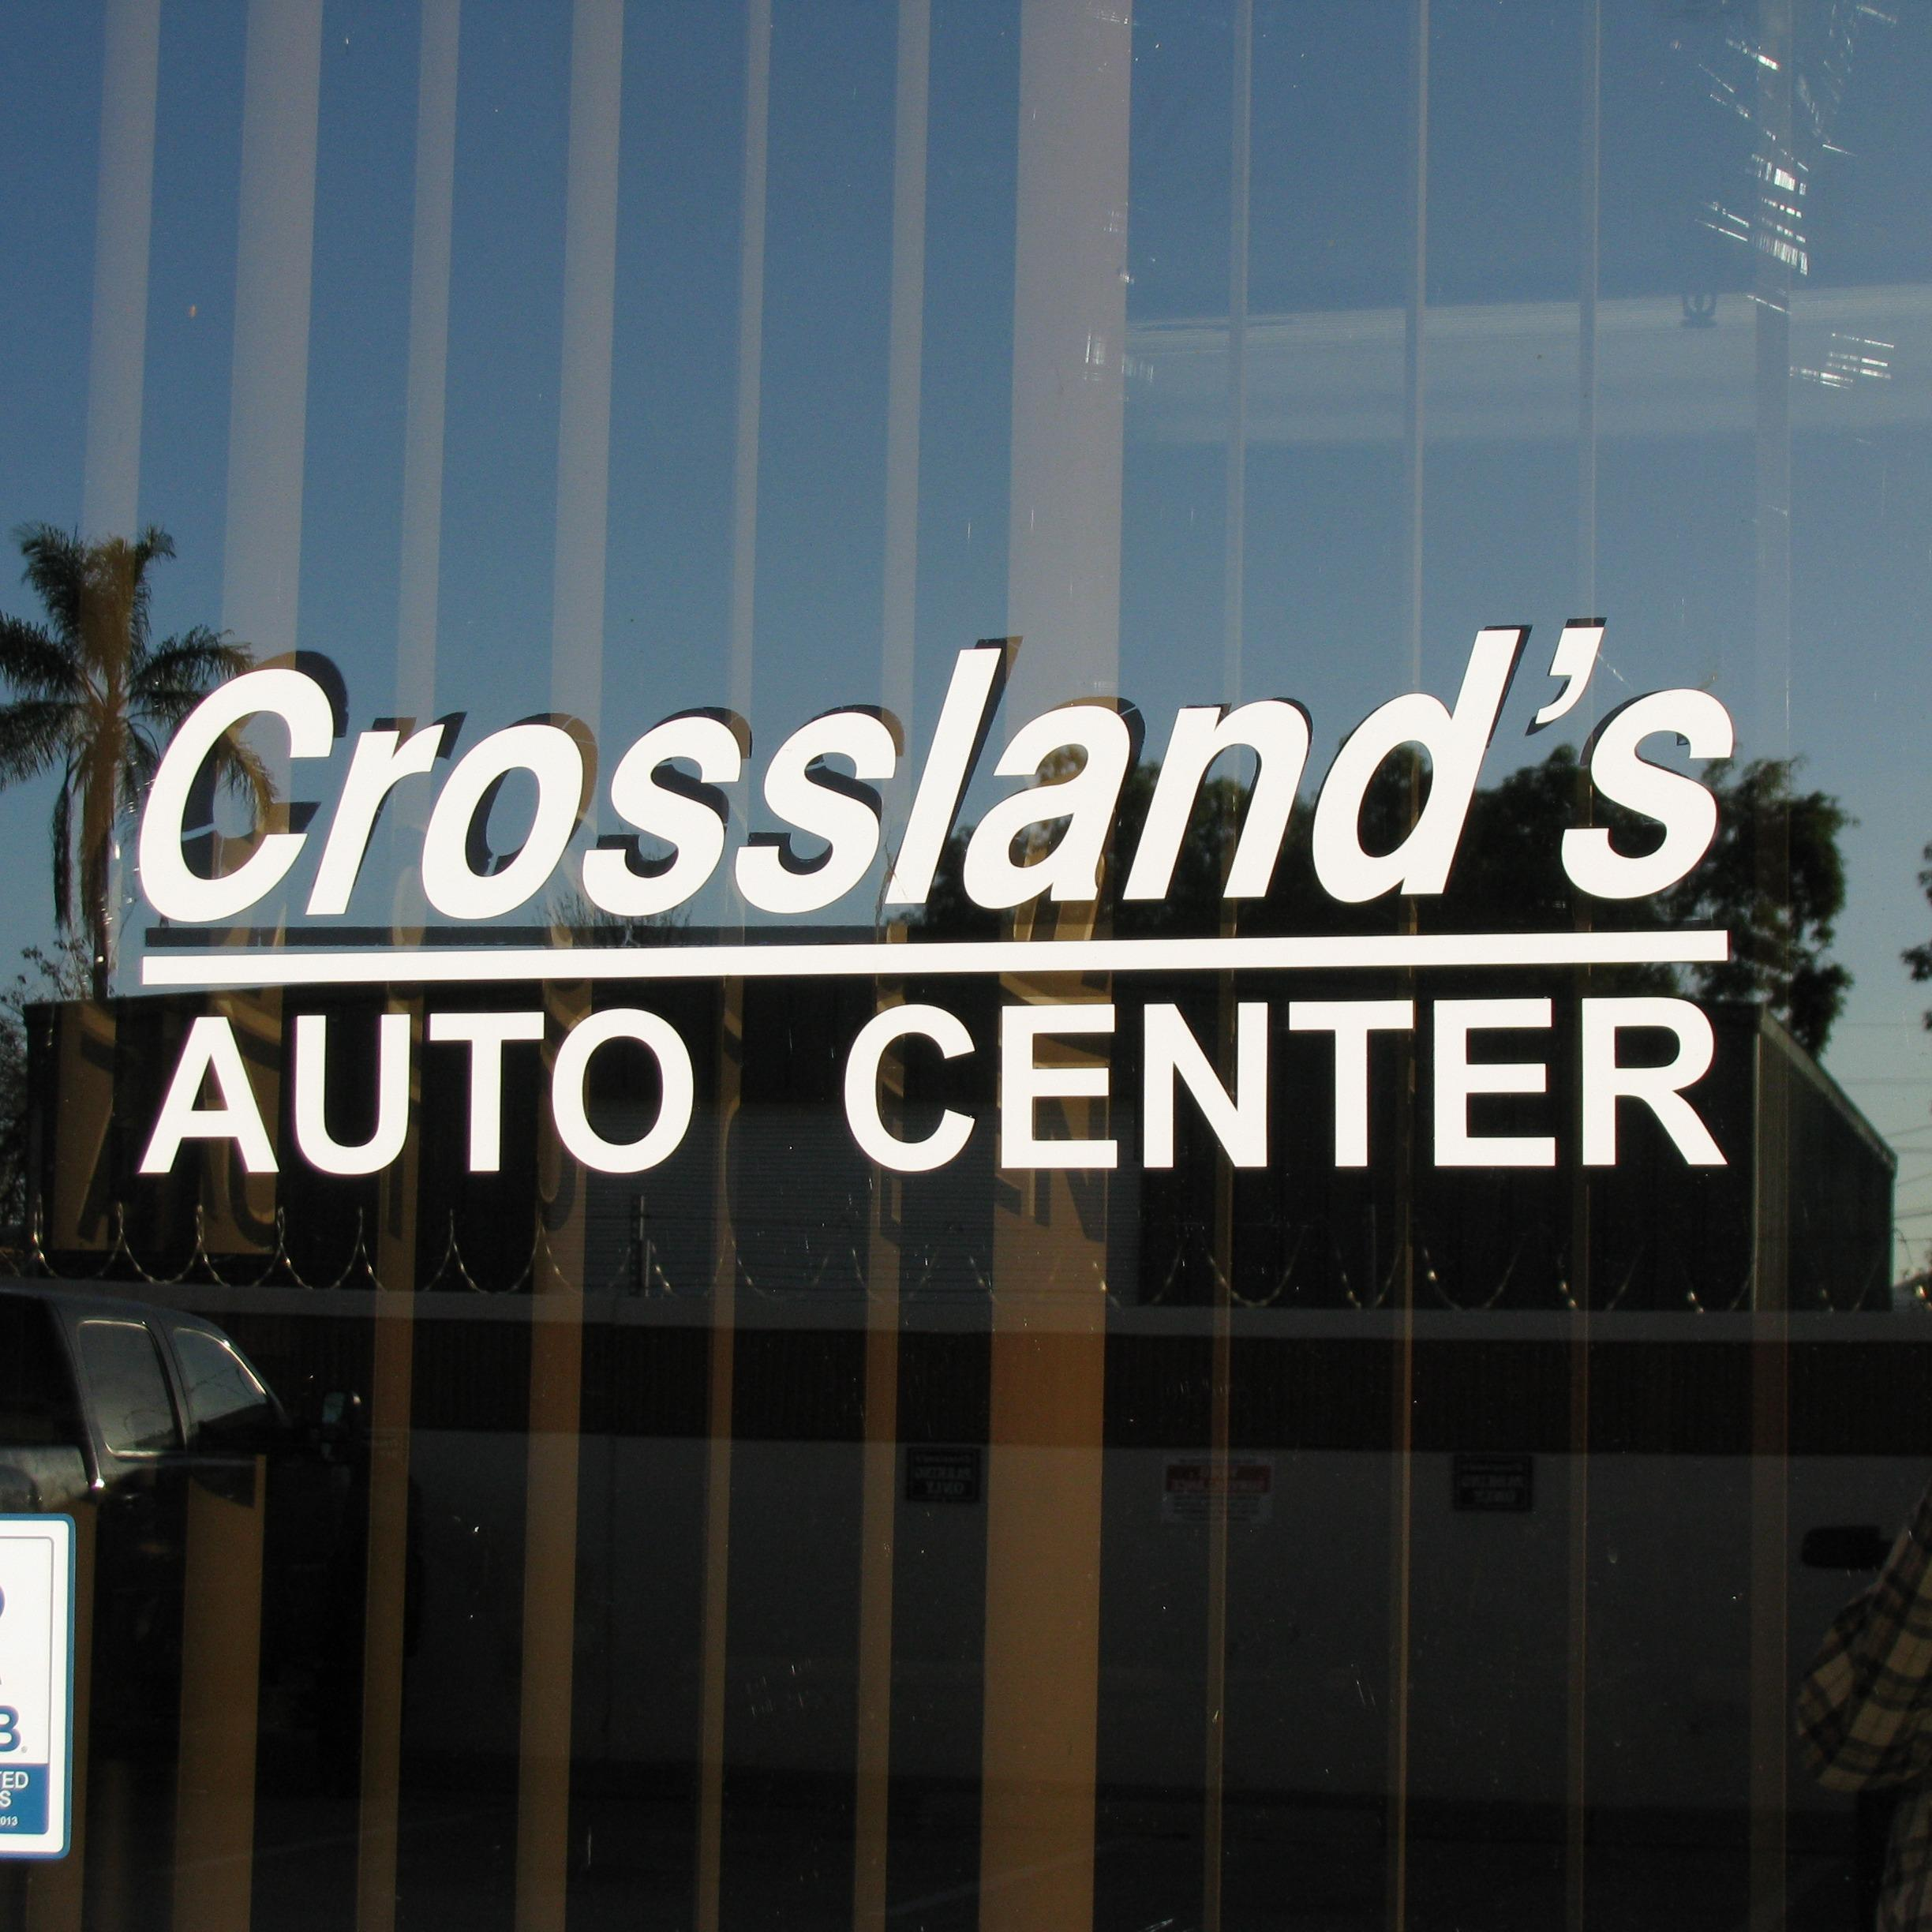 Crossland's Auto Center - El Cajon, CA - General Auto Repair & Service